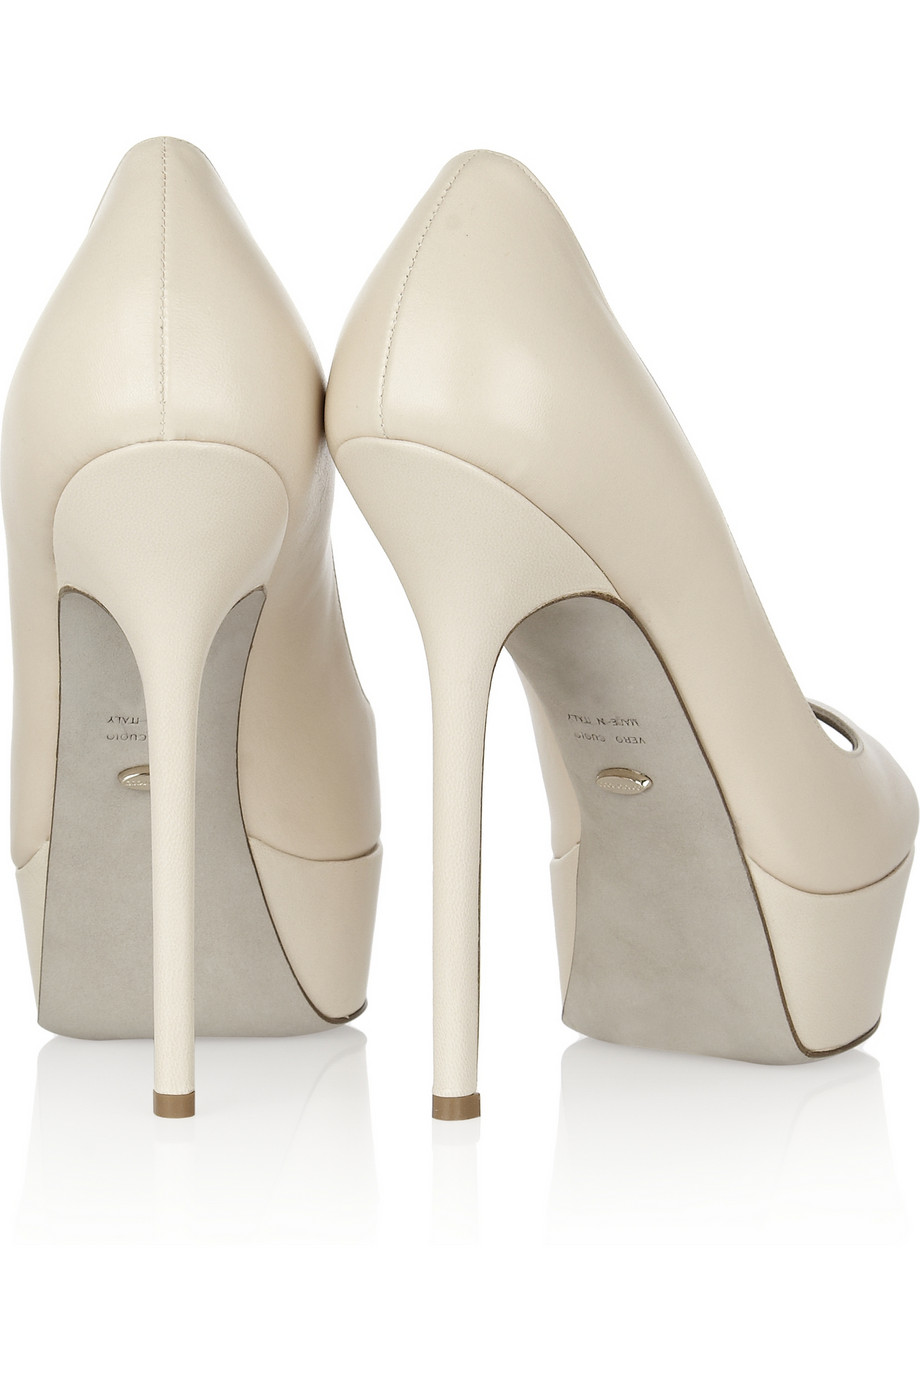 Off White Pumps Heels aDOqmkiu